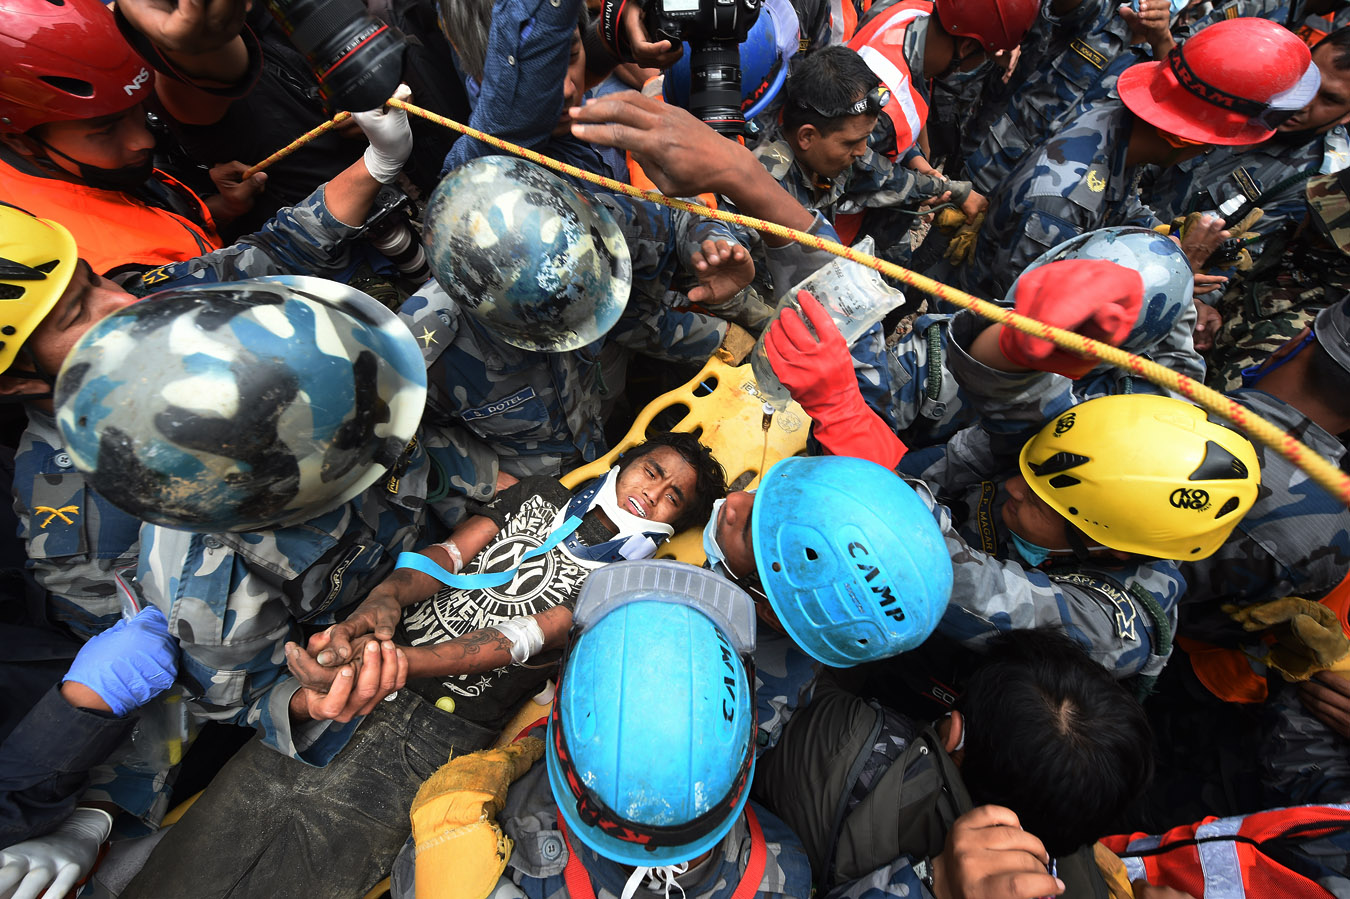 An earthquake survivor is carried away after Fairfax County emergency personnel working with USAID Disaster Assistance Response Team assisted in the effort to save Lama from the rubble on Thursday April 30, 2015 in Kathmandu, Nepal. A deadly earthquake in Nepal has killed thousands. (Photo by Matt McClain/ The Washington Post)